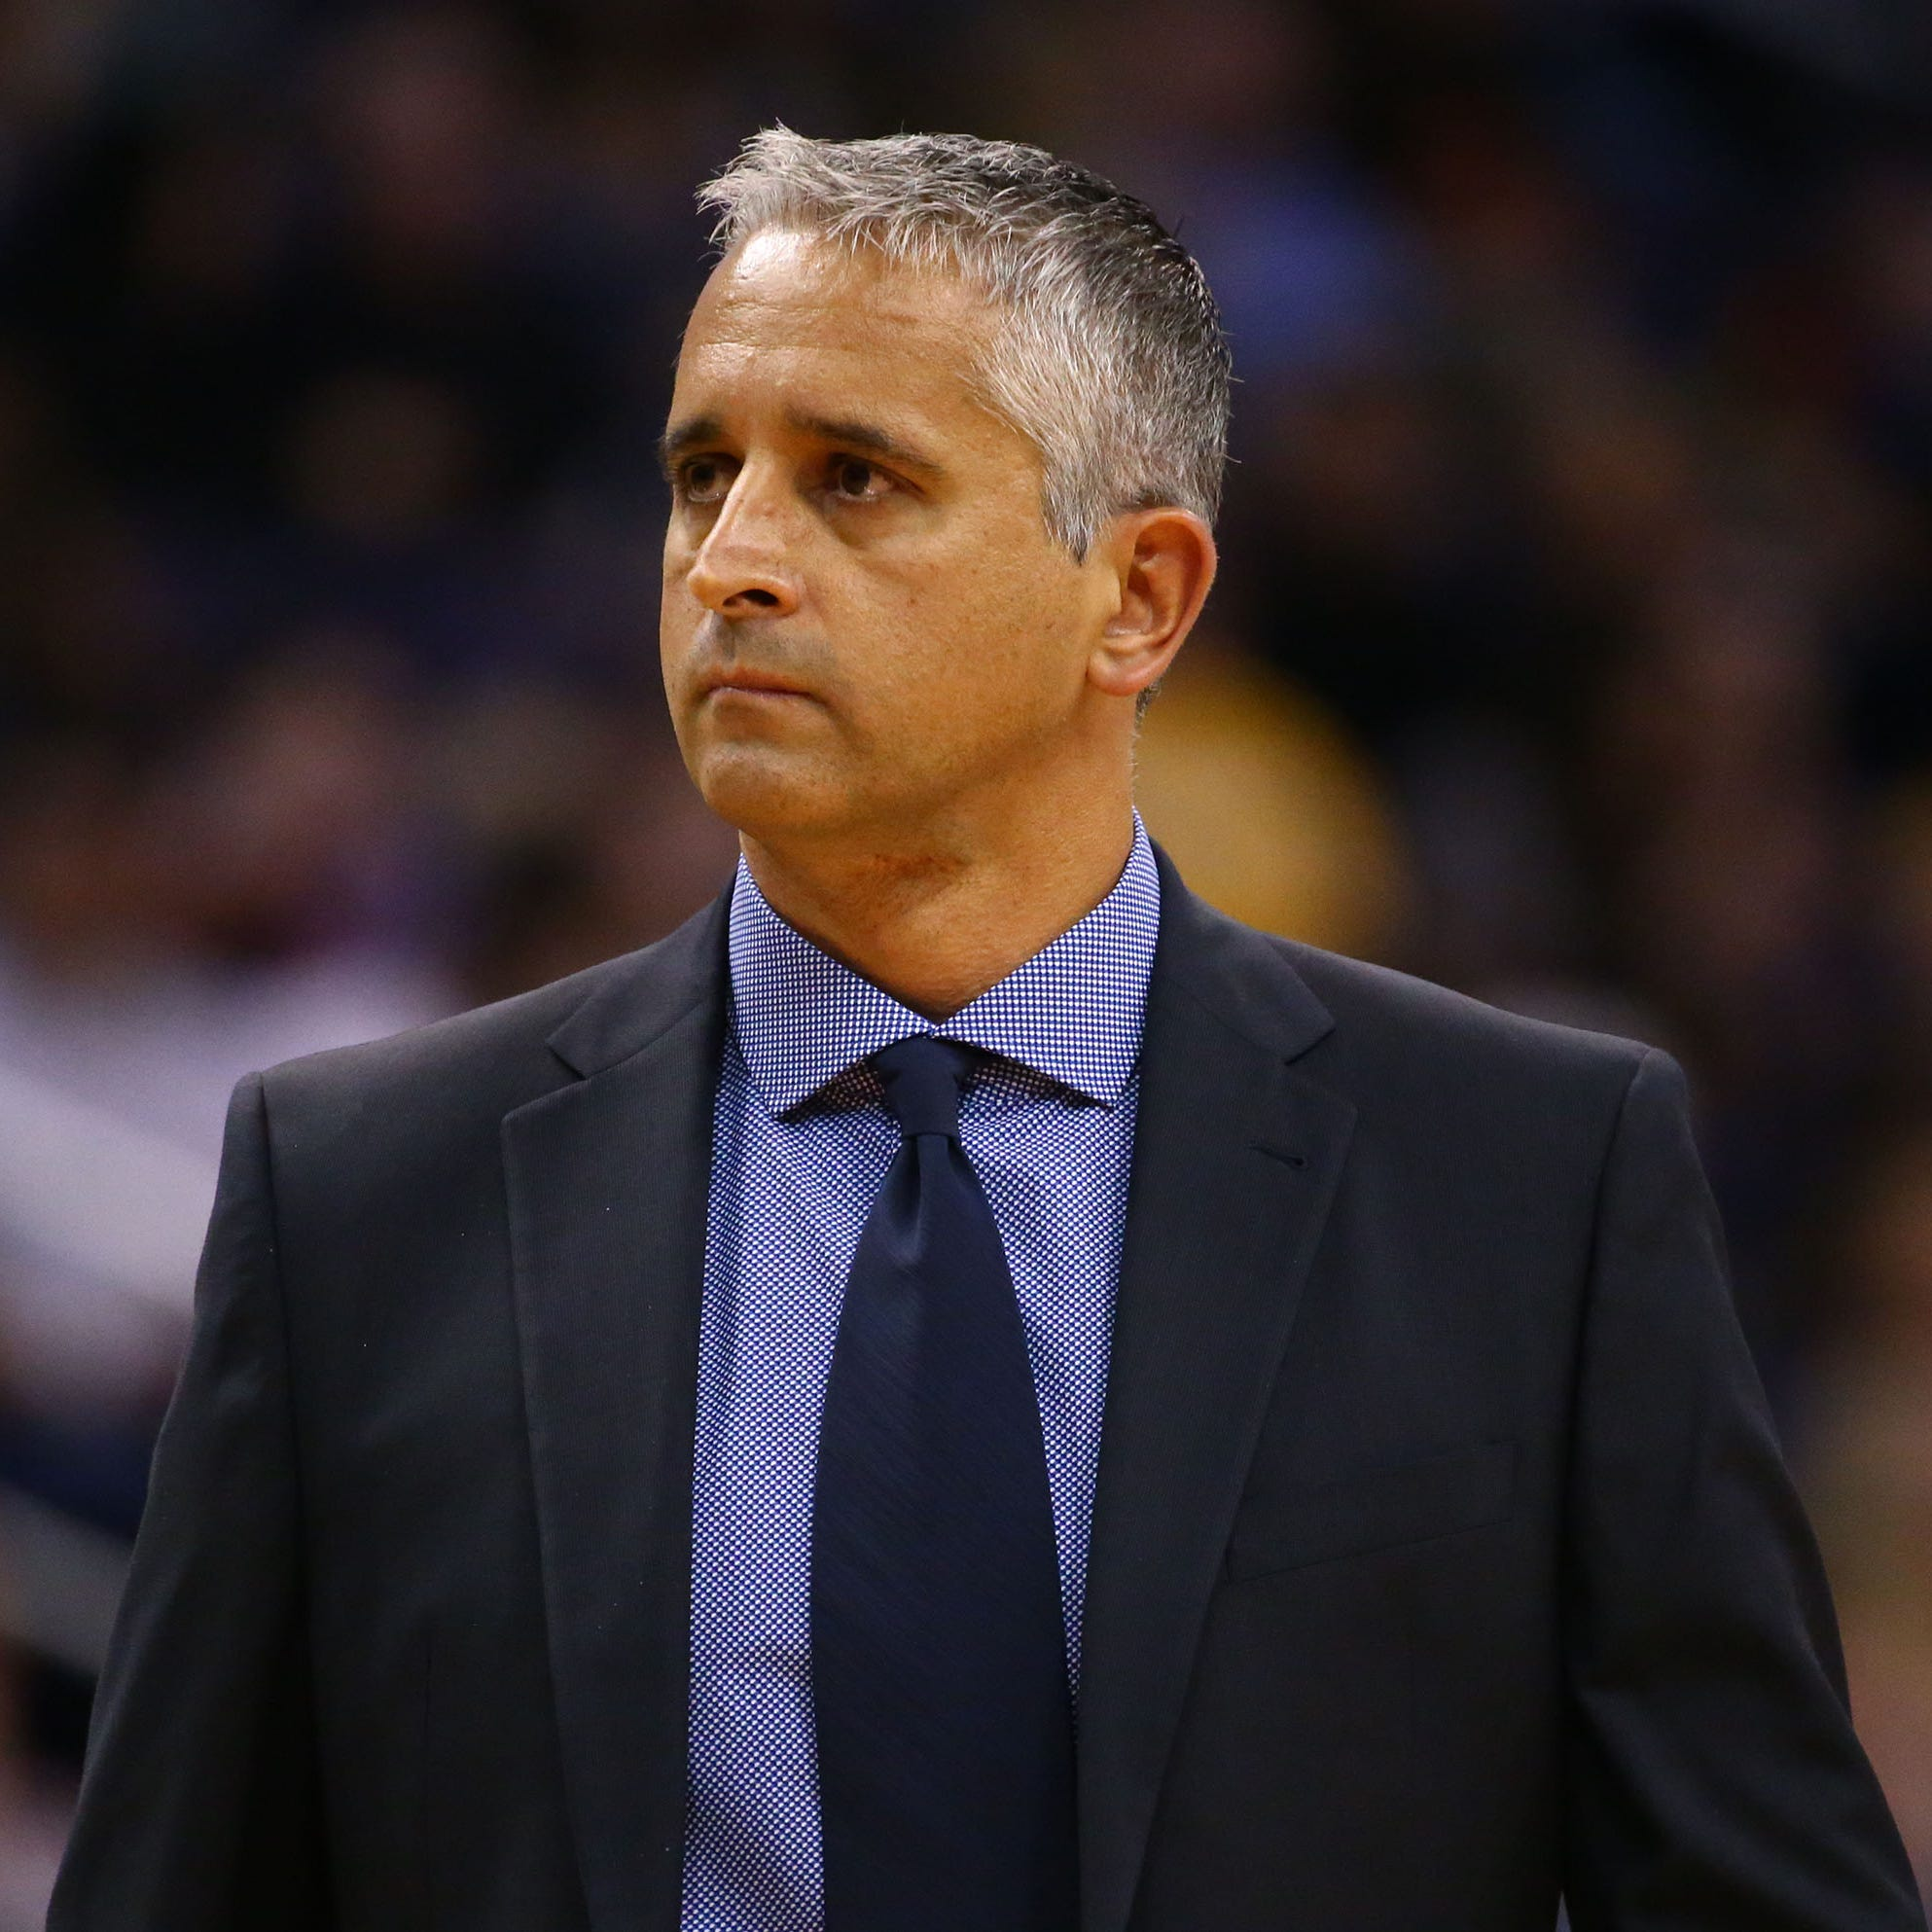 Phoenix Suns fire head coach coach Igor Kokoskov after one season